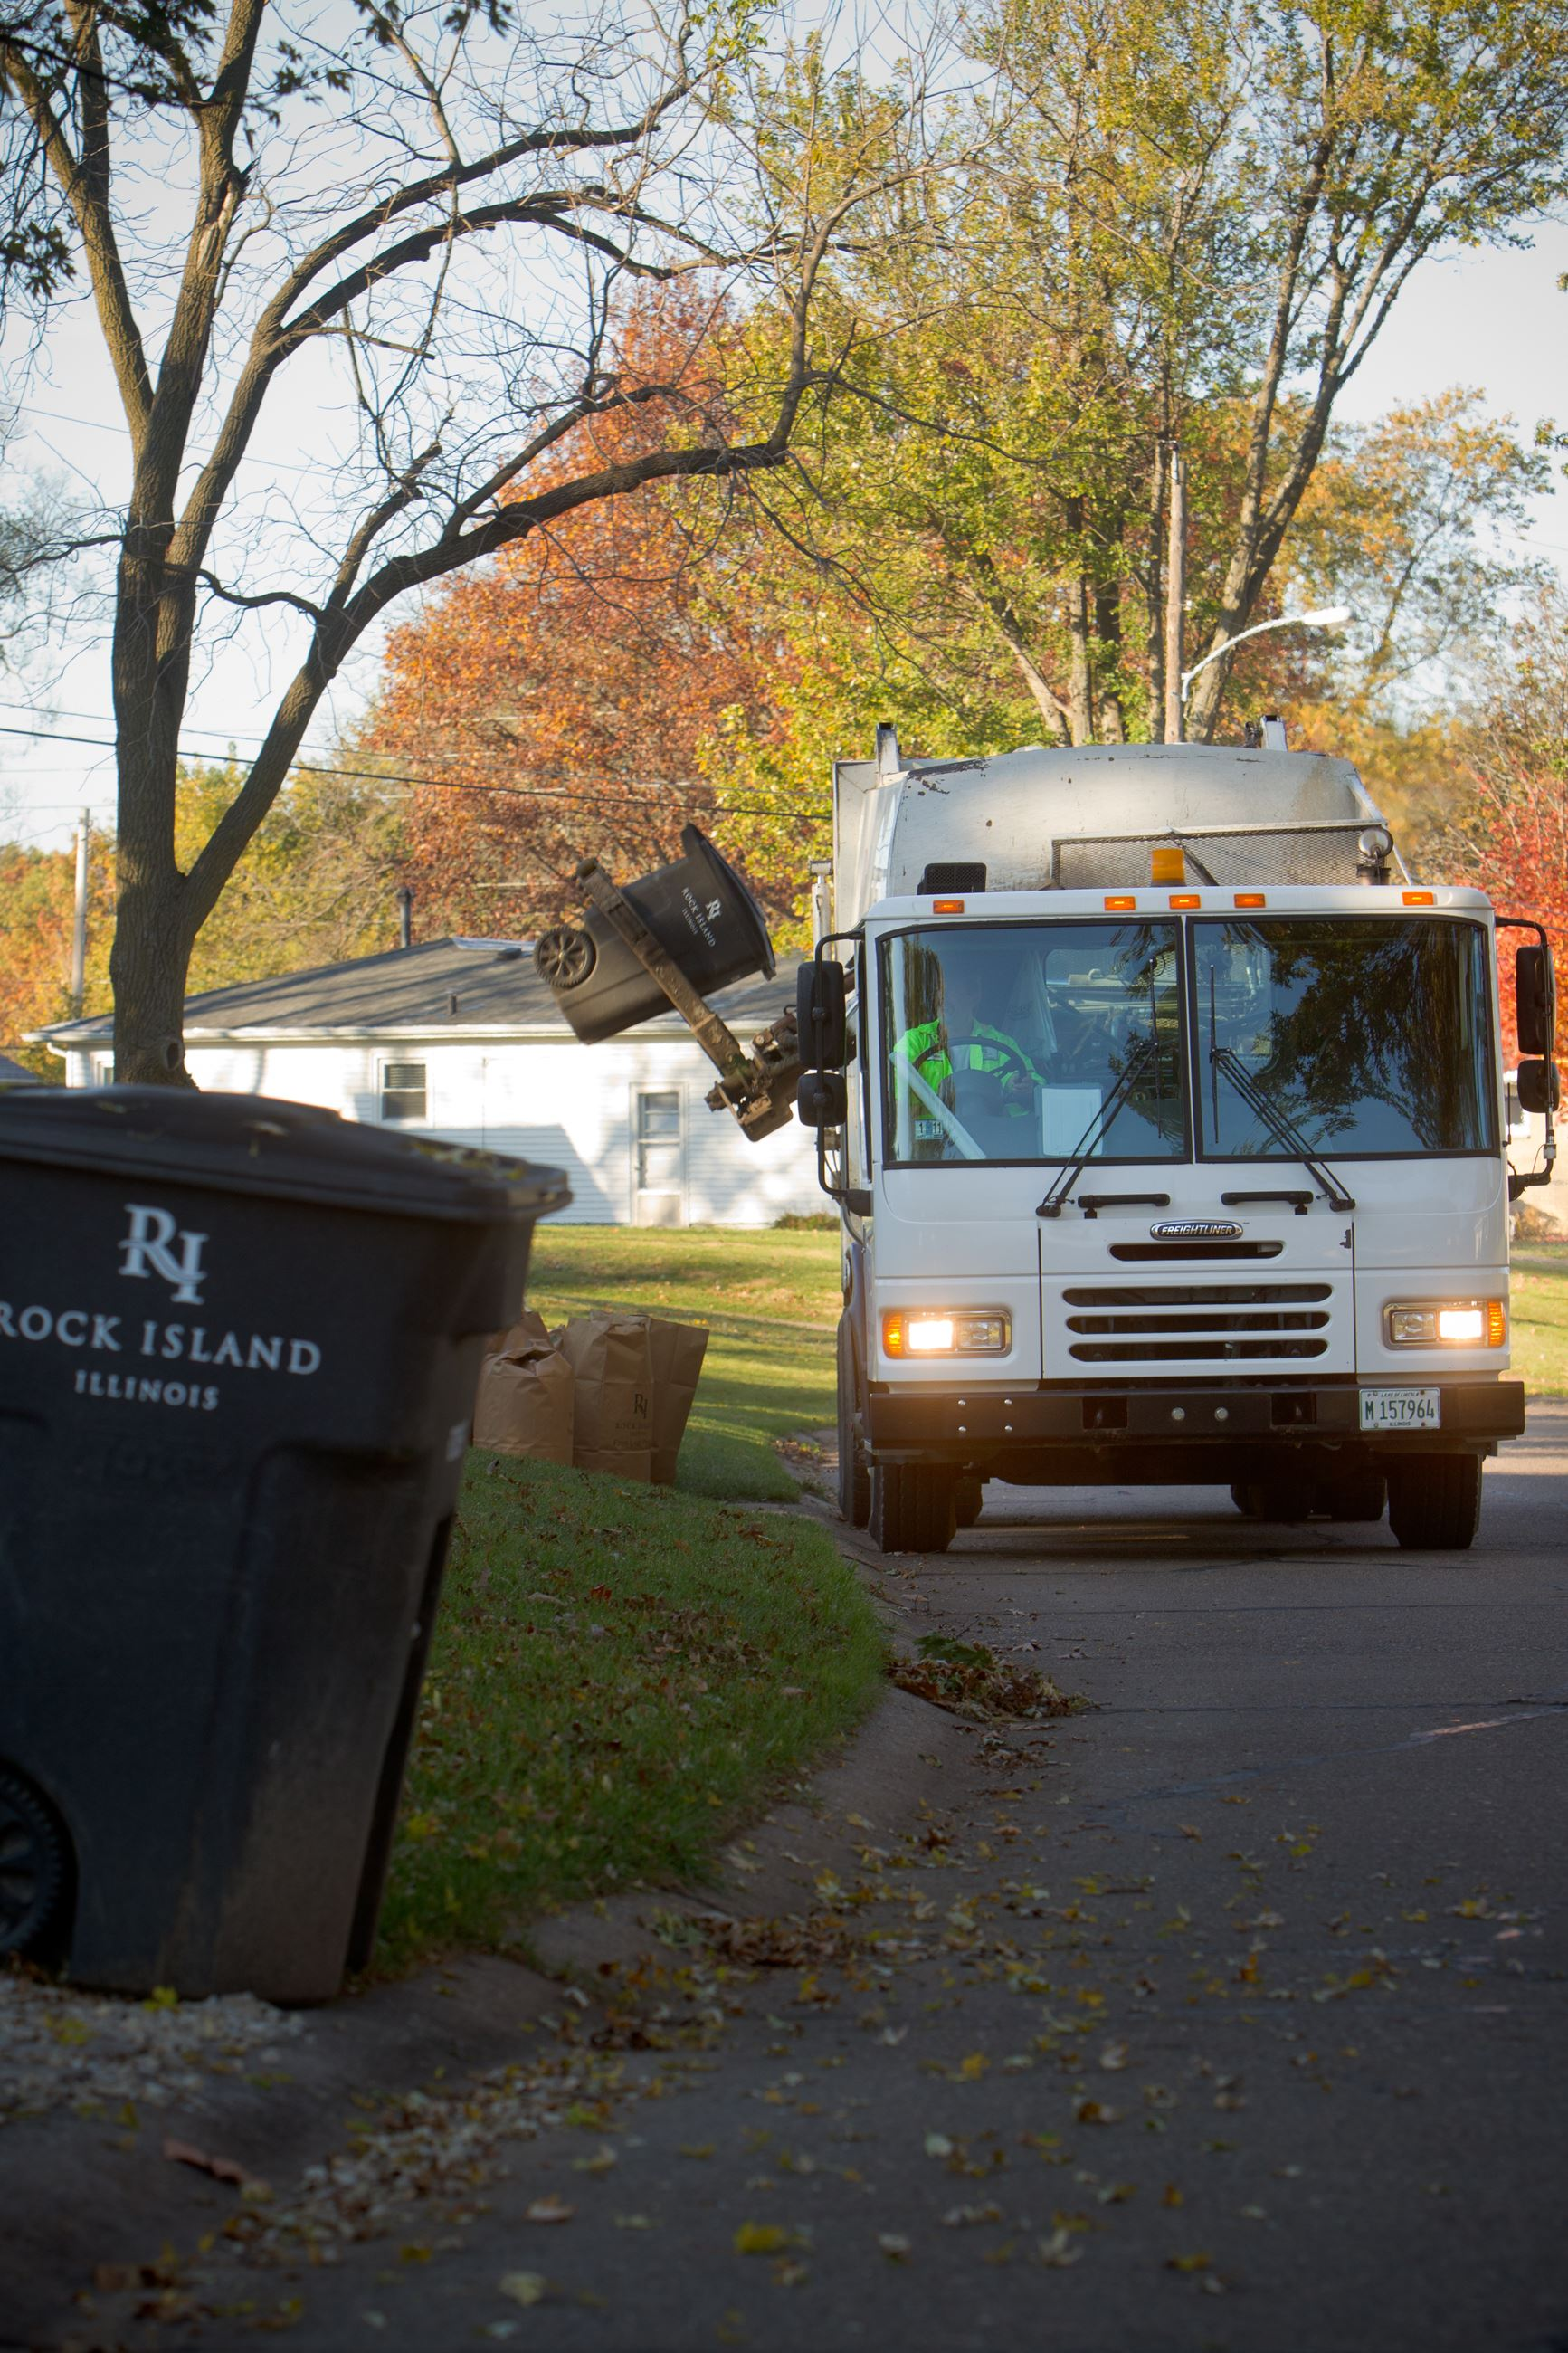 Refuse truck and cart in neighborhood during leaf bag collection